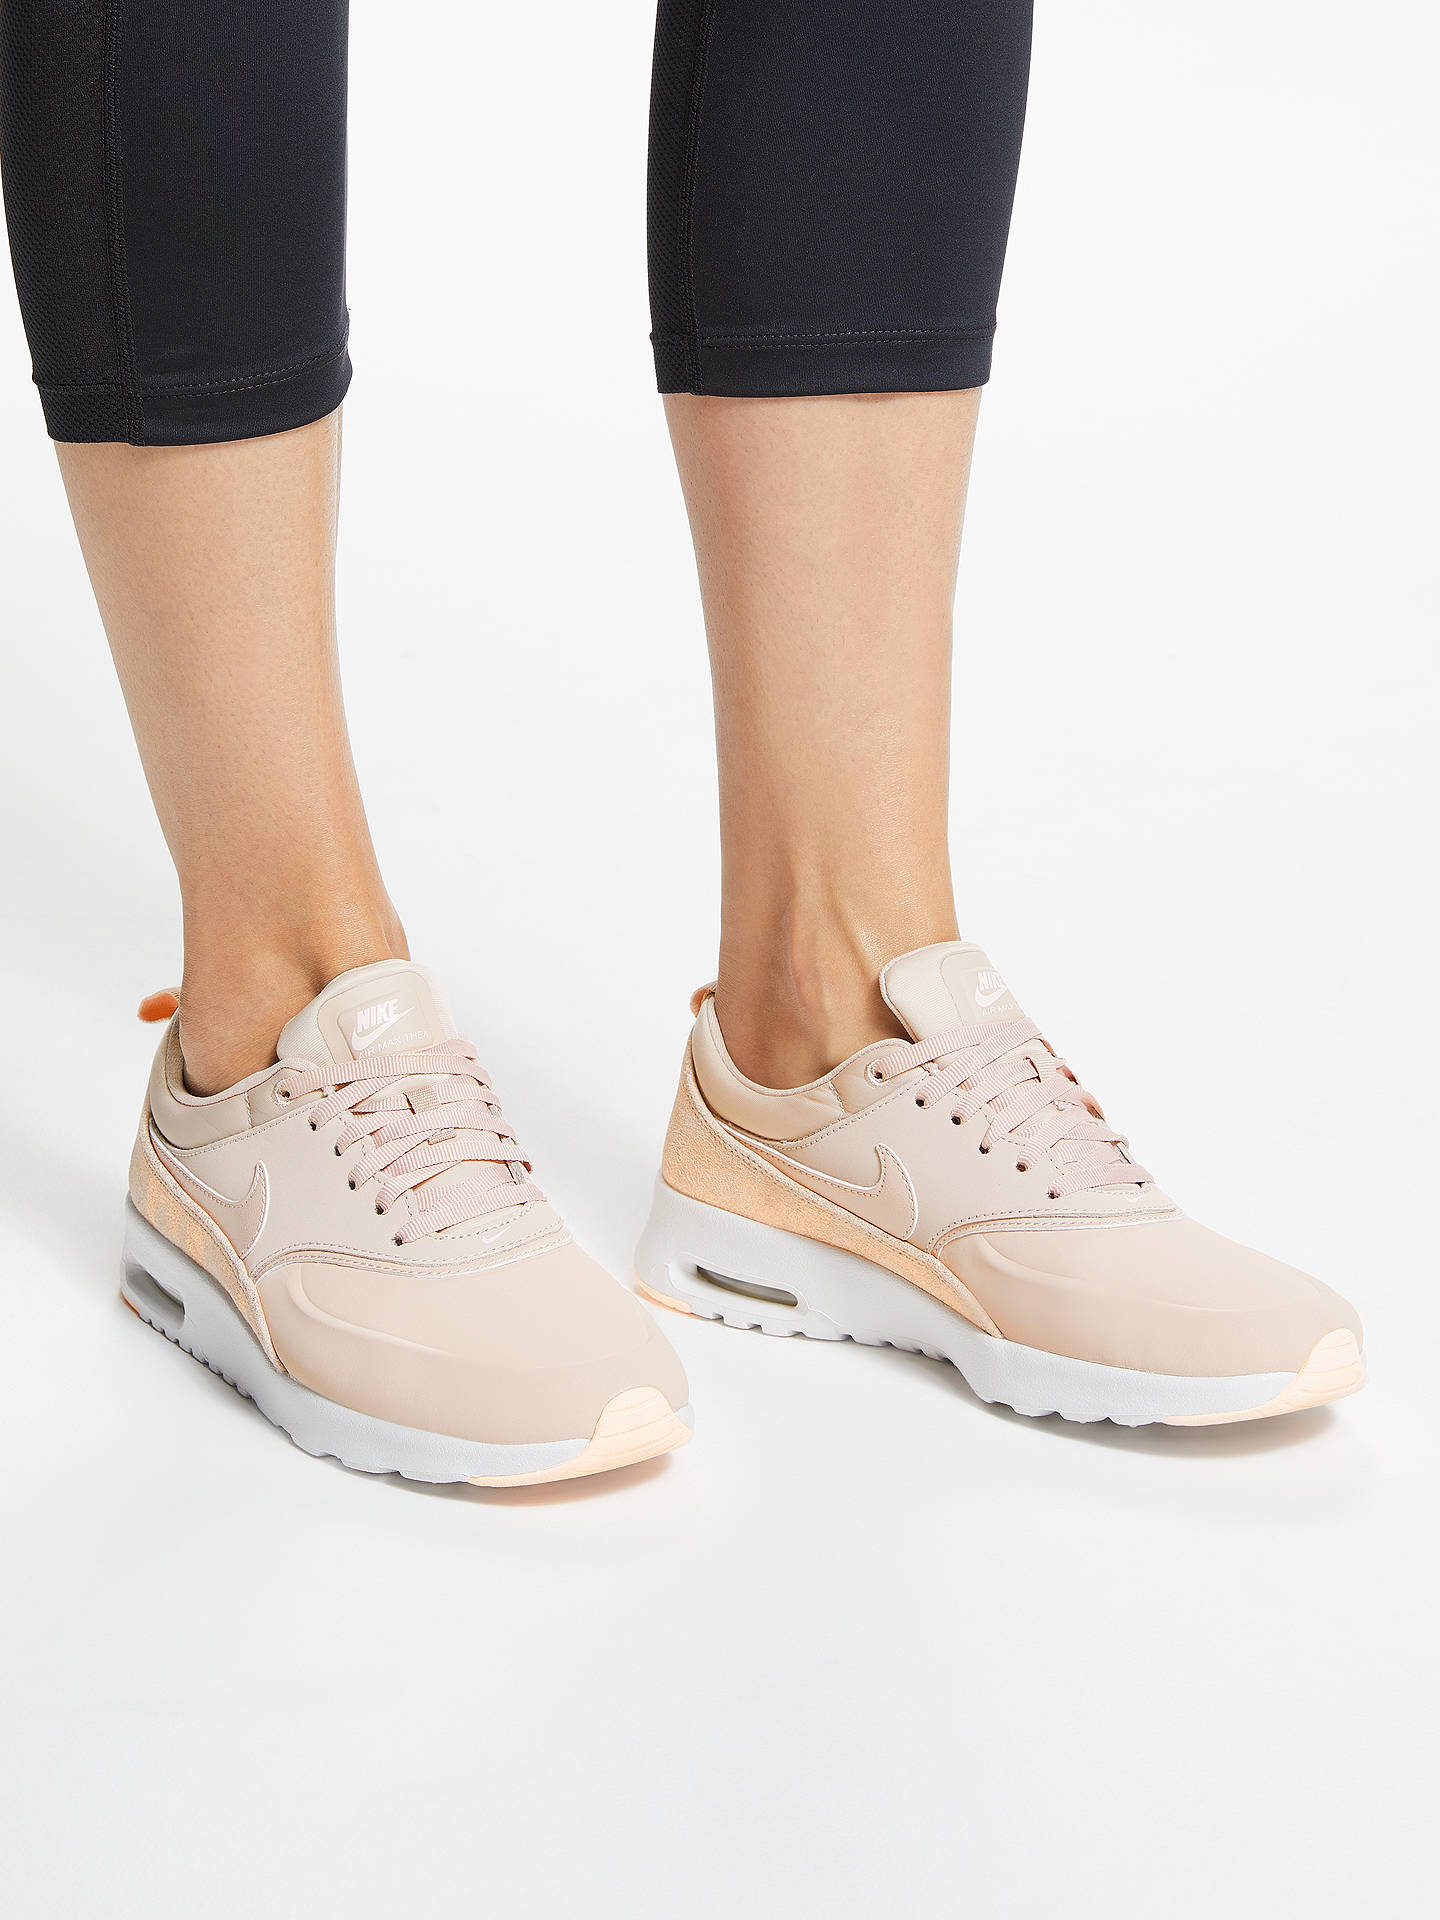 Nike Air Max Thea Premium Women's Trainers, Particle Beige